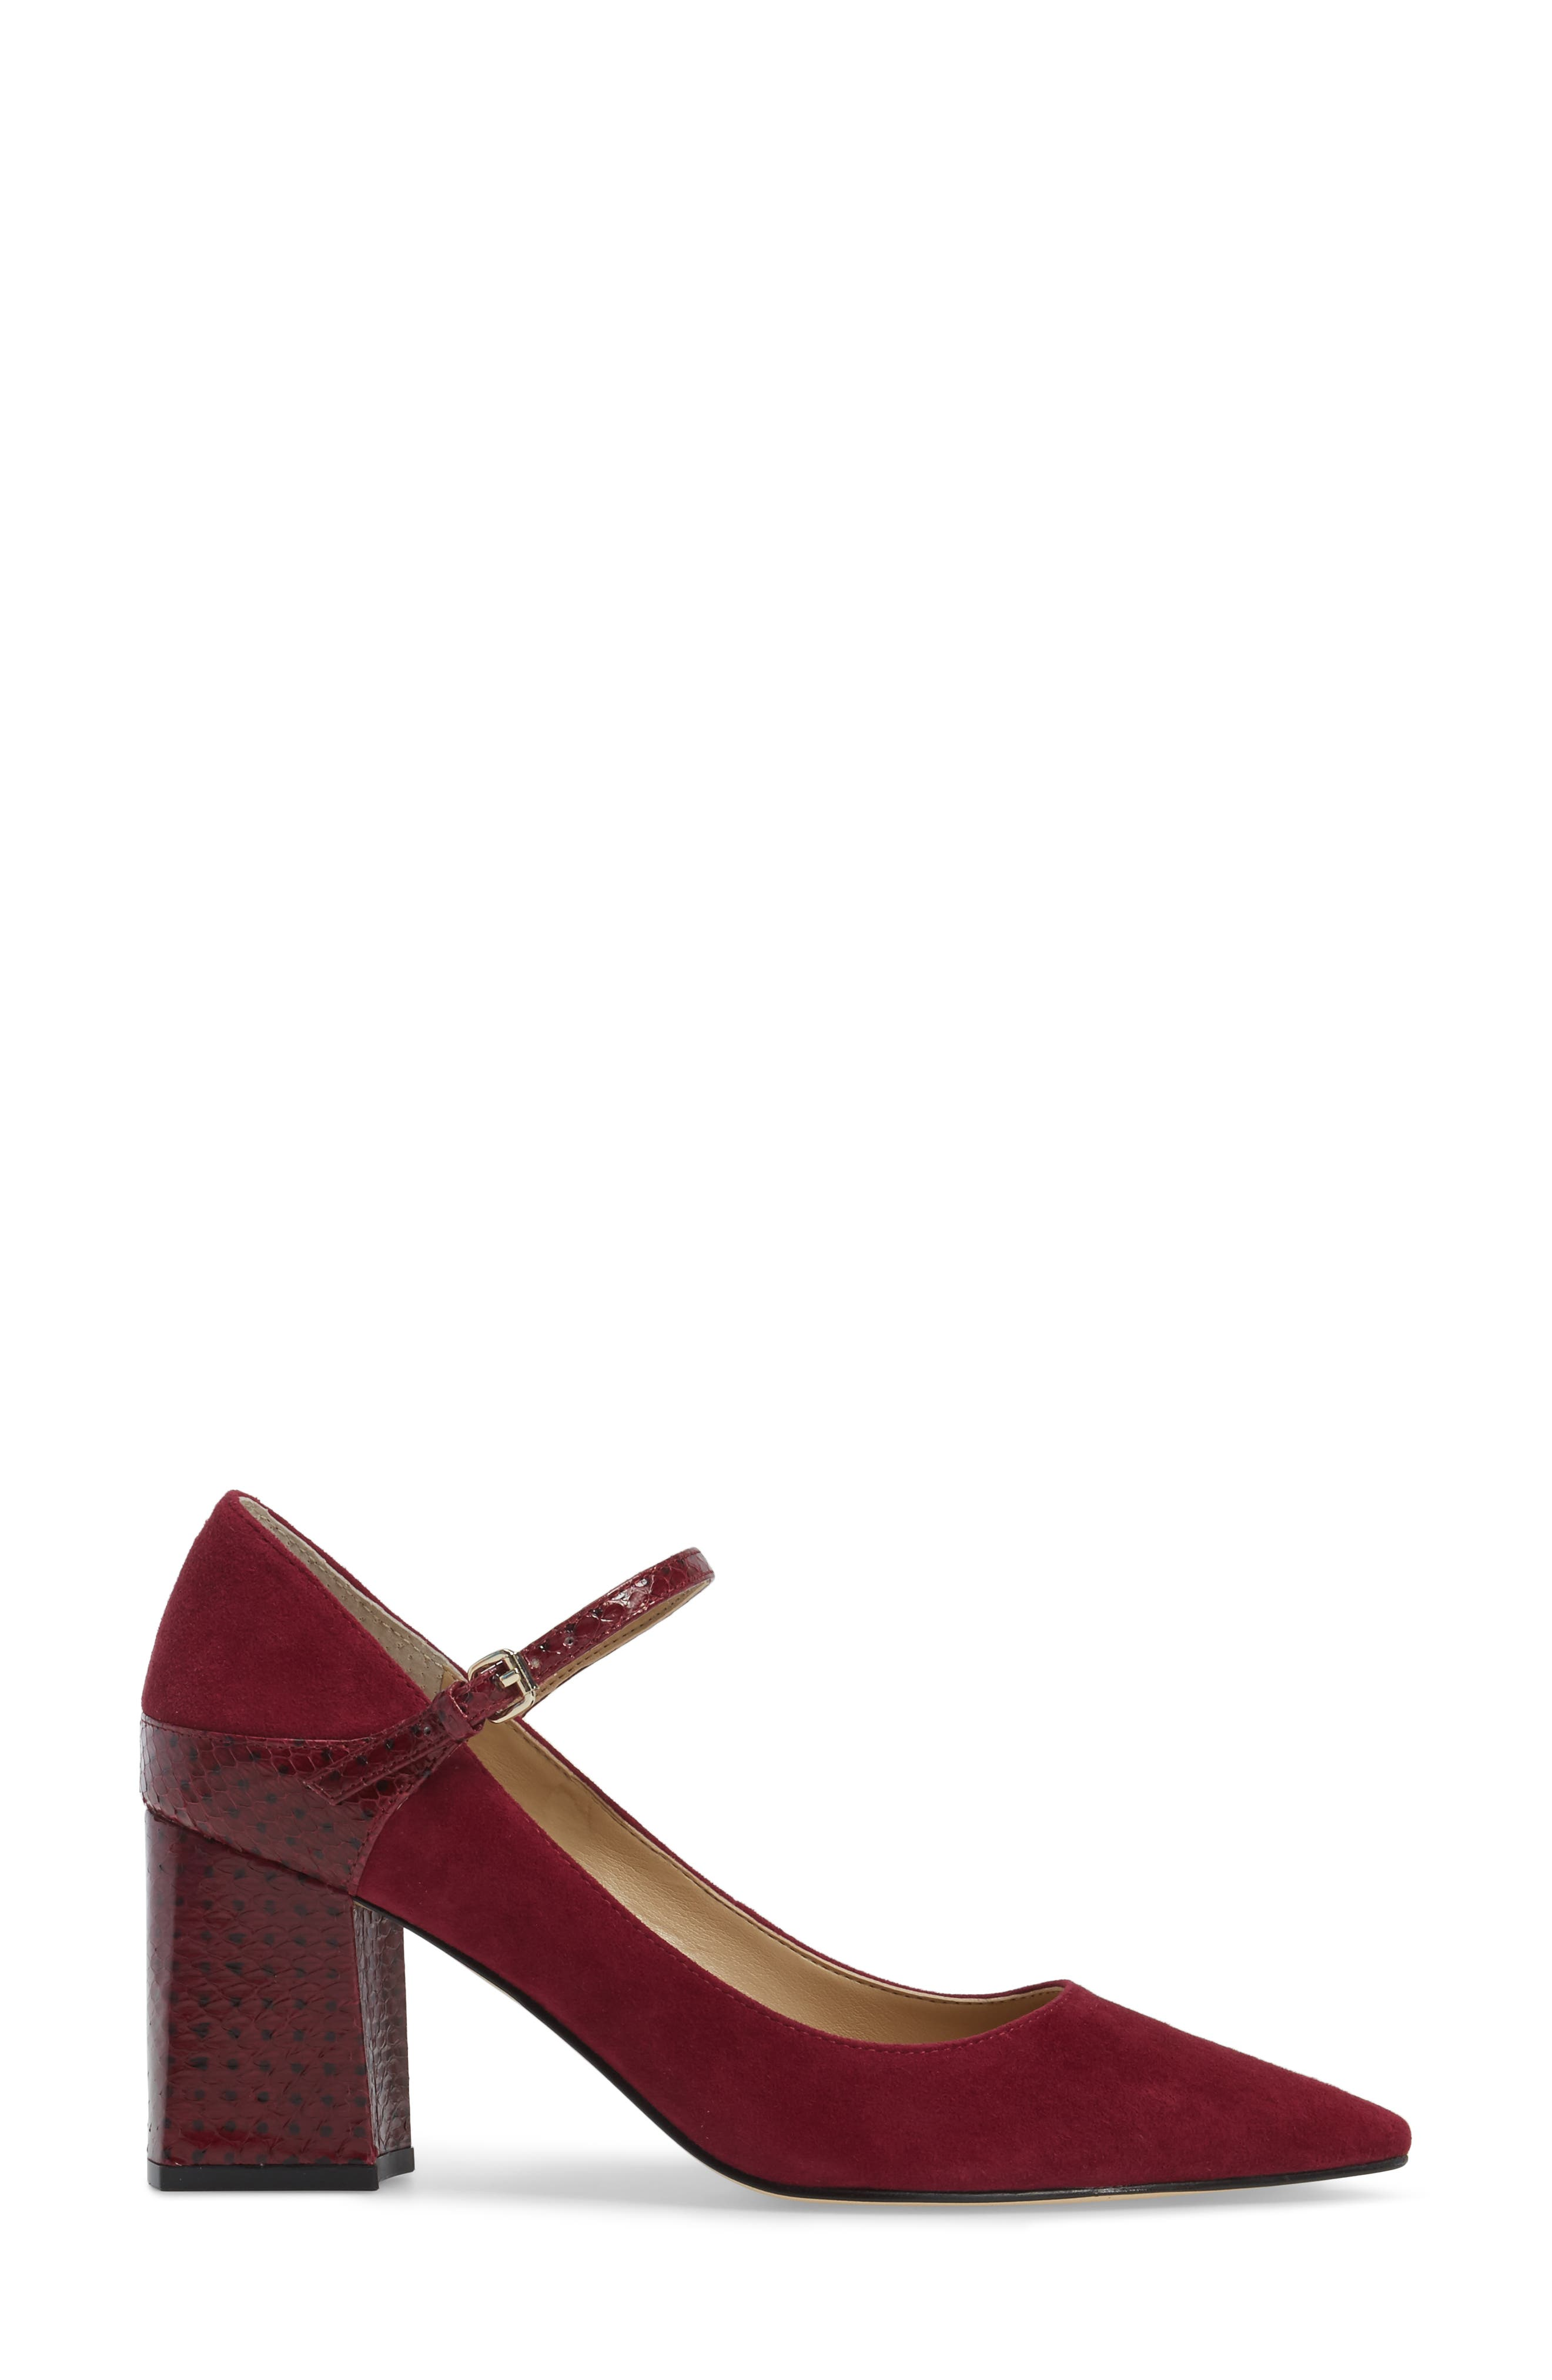 Zullys Snake Embossed Mary Jane Pump,                             Alternate thumbnail 3, color,                             Berry/ Berry Leather